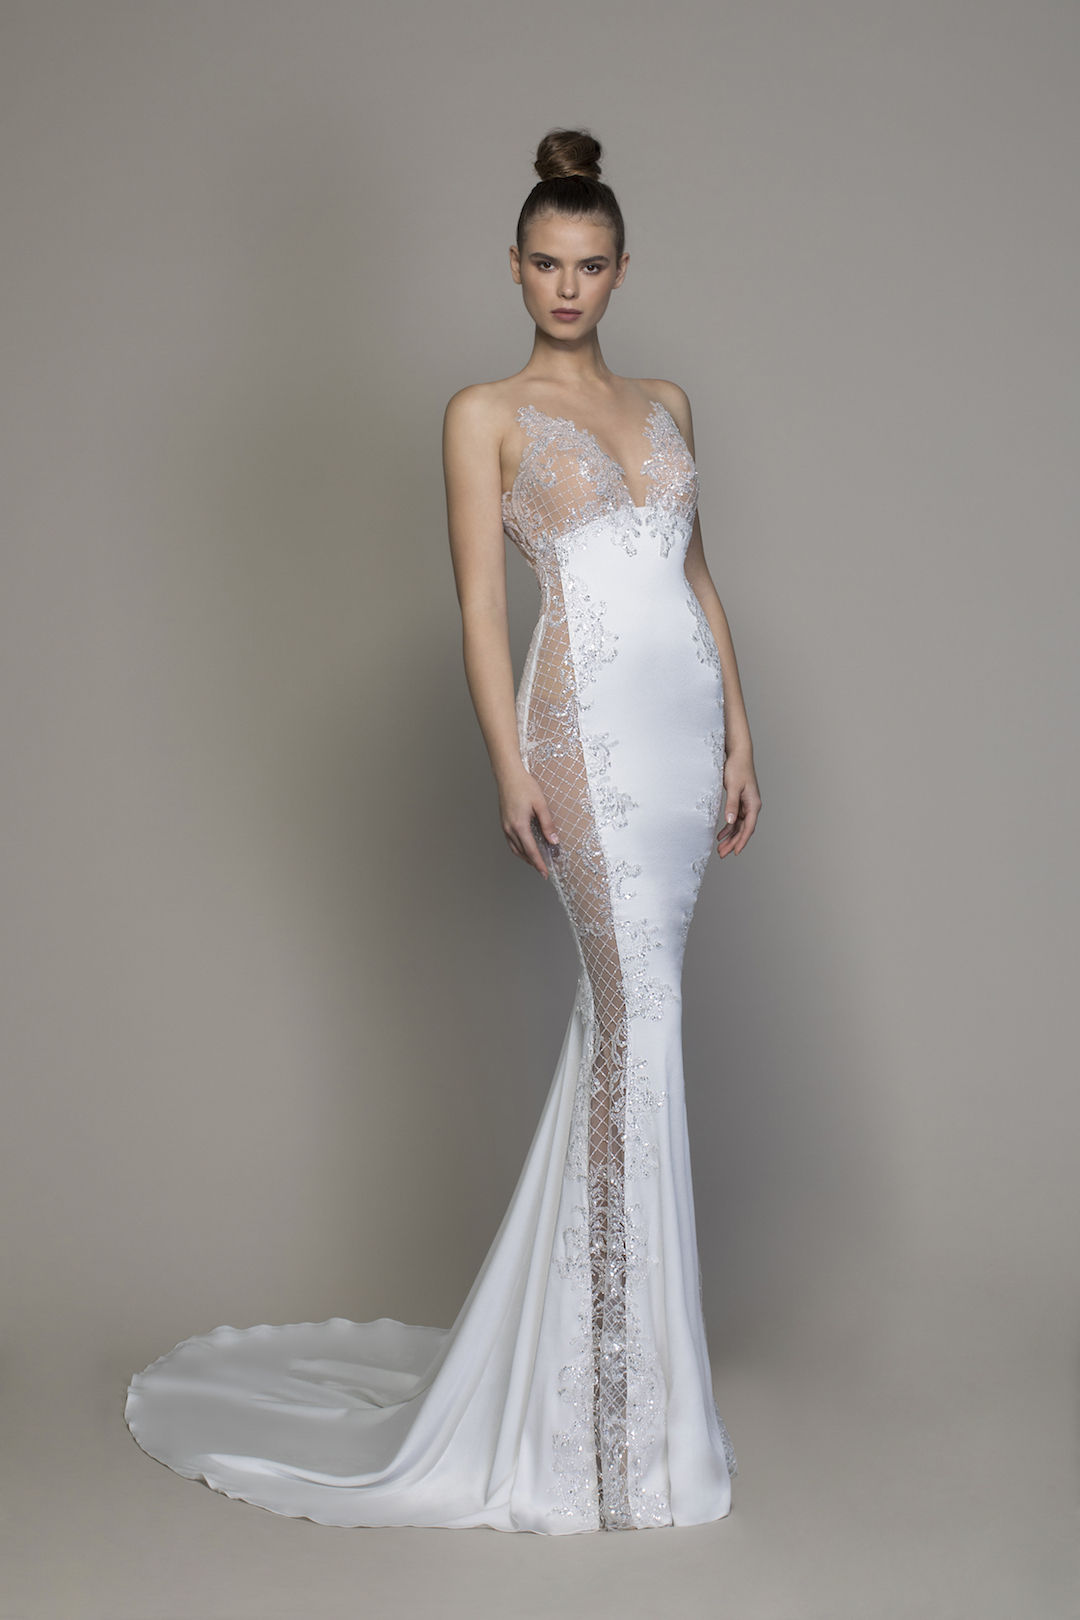 Pnina Tornai's new LOVE 2020 Collection is out! This is style 14768